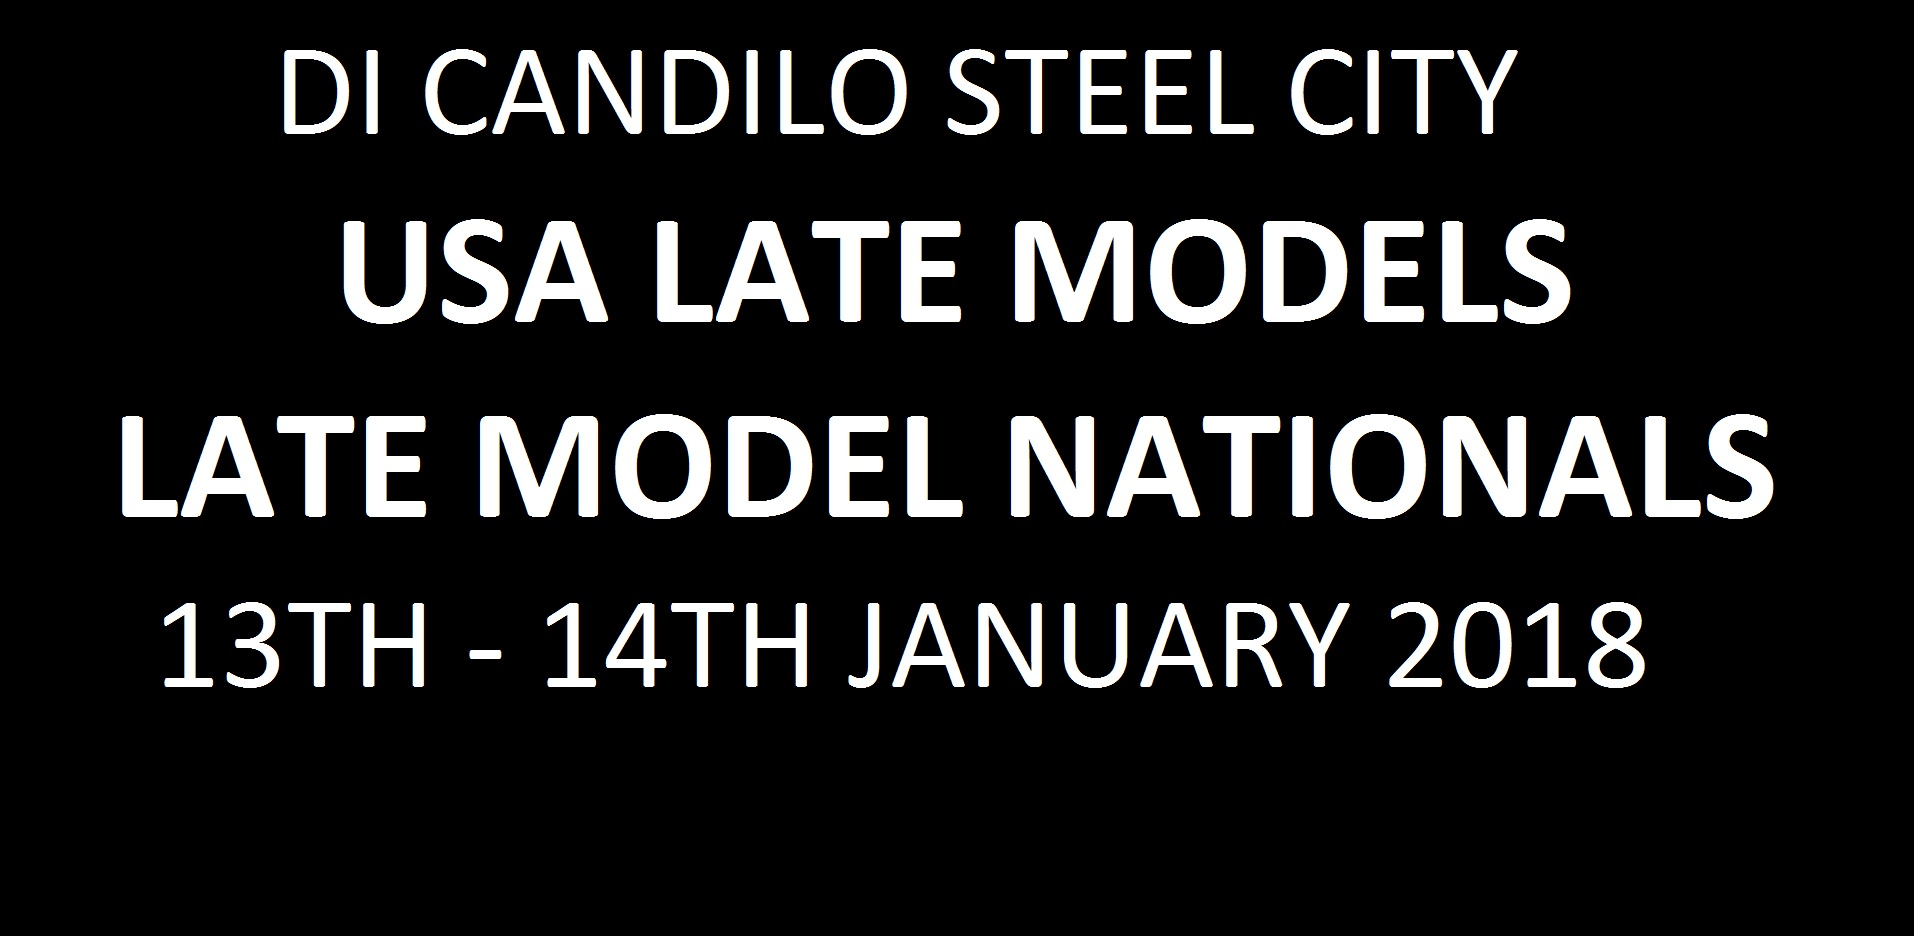 07. Di Candilo Steel City - Late Model Nationals - 13th-14th  January 2018 Image